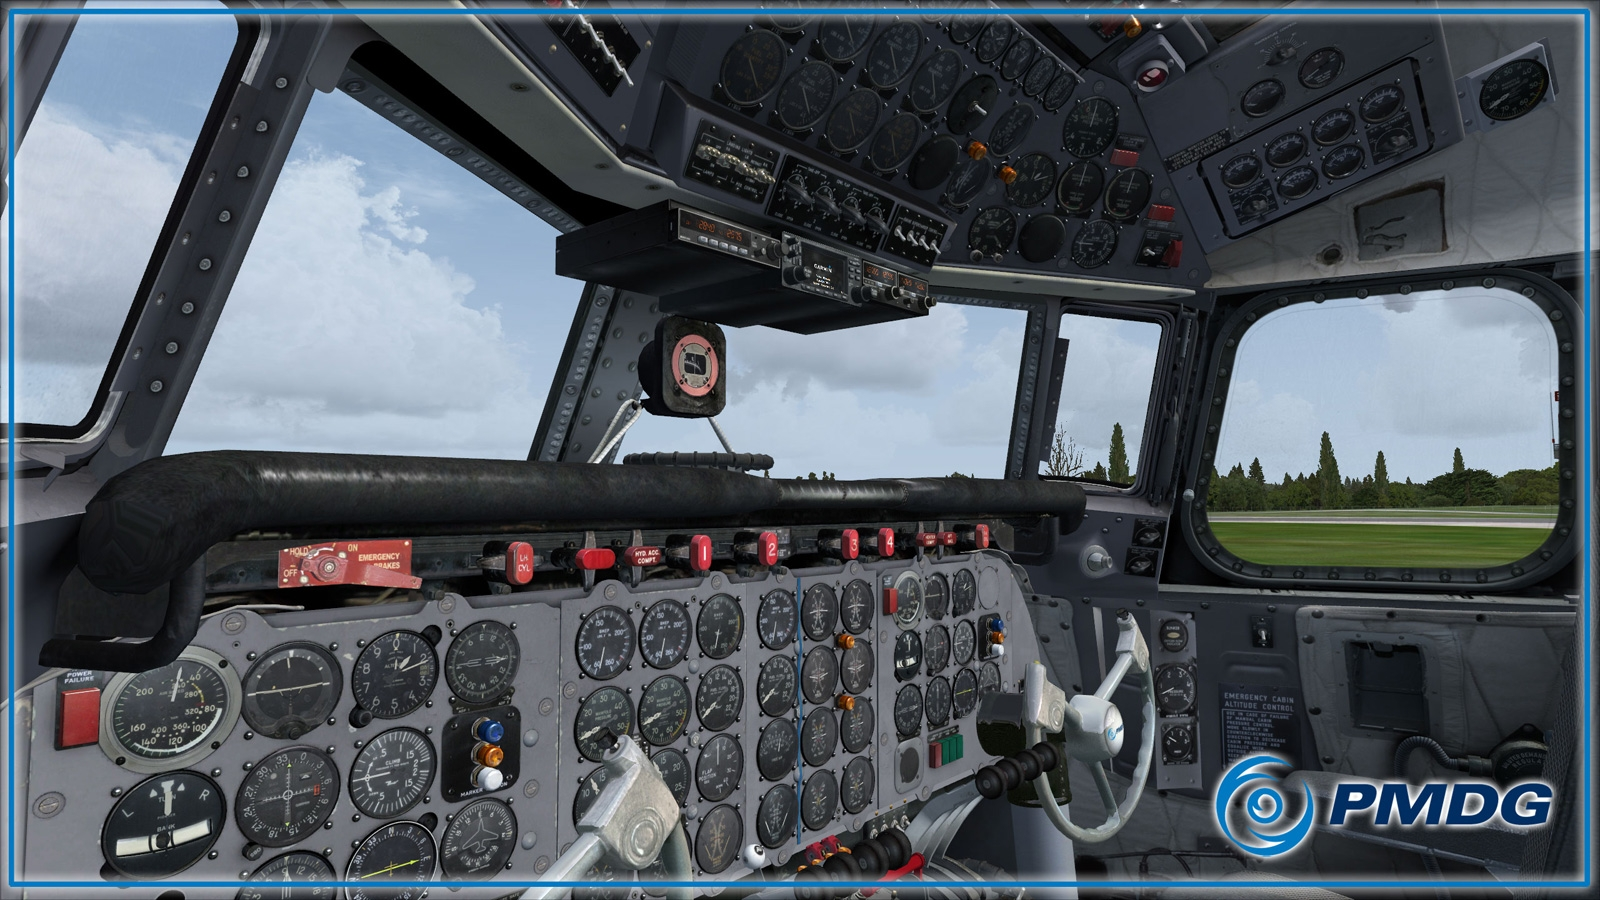 PMDG_DC6_Virtual_Cockpit_06.jpg